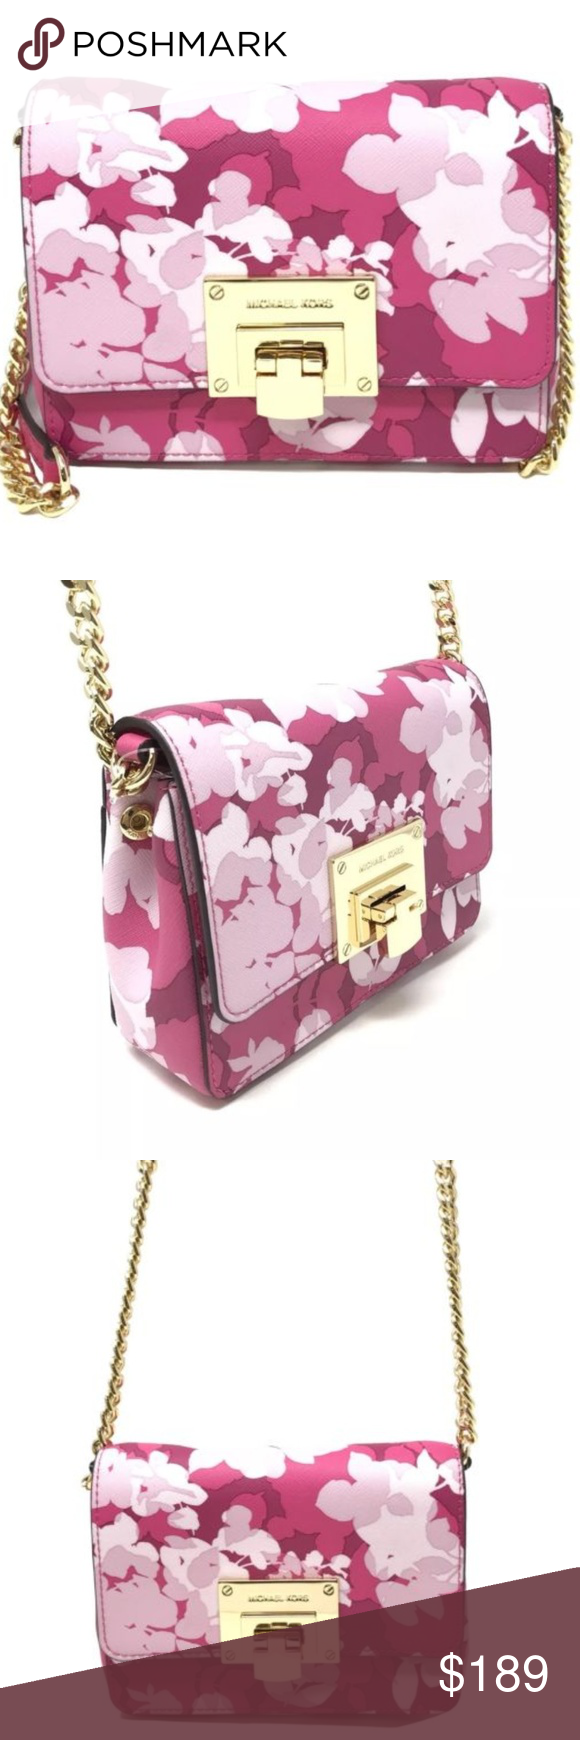 18e872f1d9a5 Small Pink Floral Clutch Crossbody by MK This adorable clutch crossbody